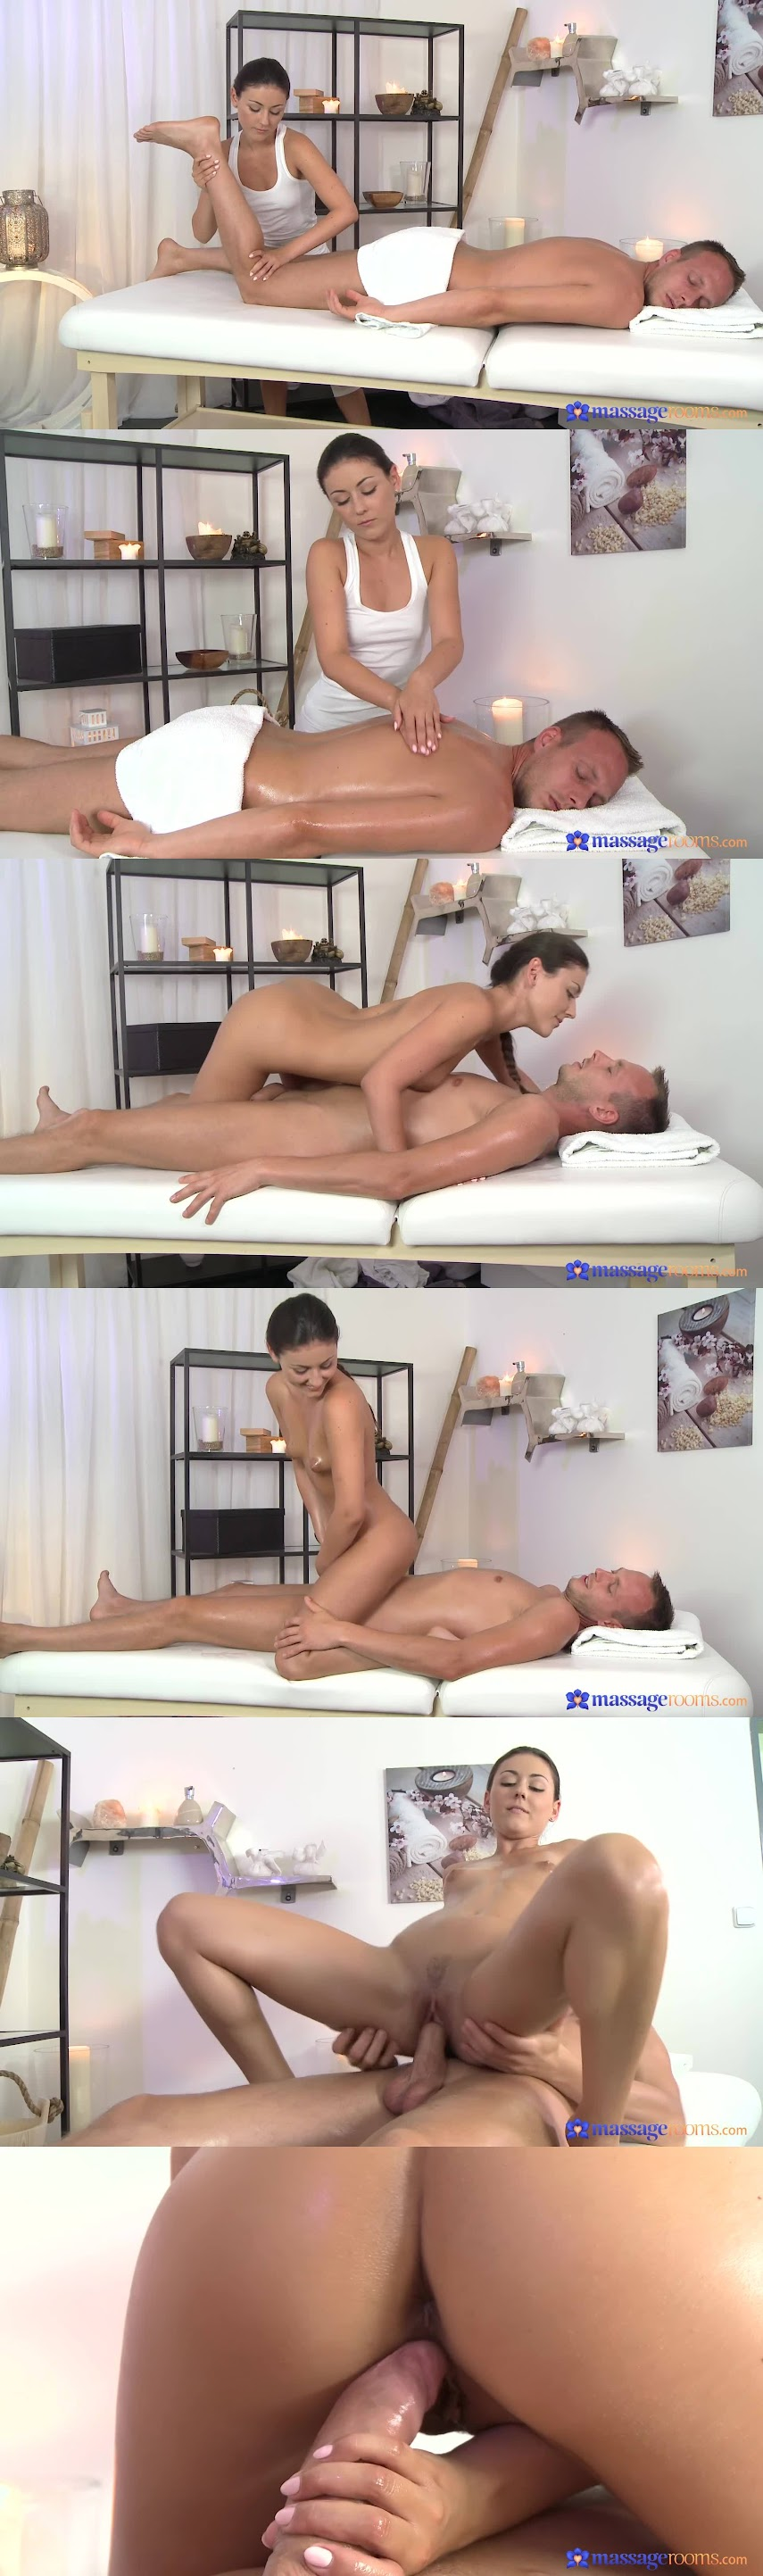 sexyhub.14.08.24.an-oil-massage-leads-to-full-sexual-fantasy.mp4-jk- sexyhub.14.08.24.an-oil-massage-leads-to-full-sexual-fantasy